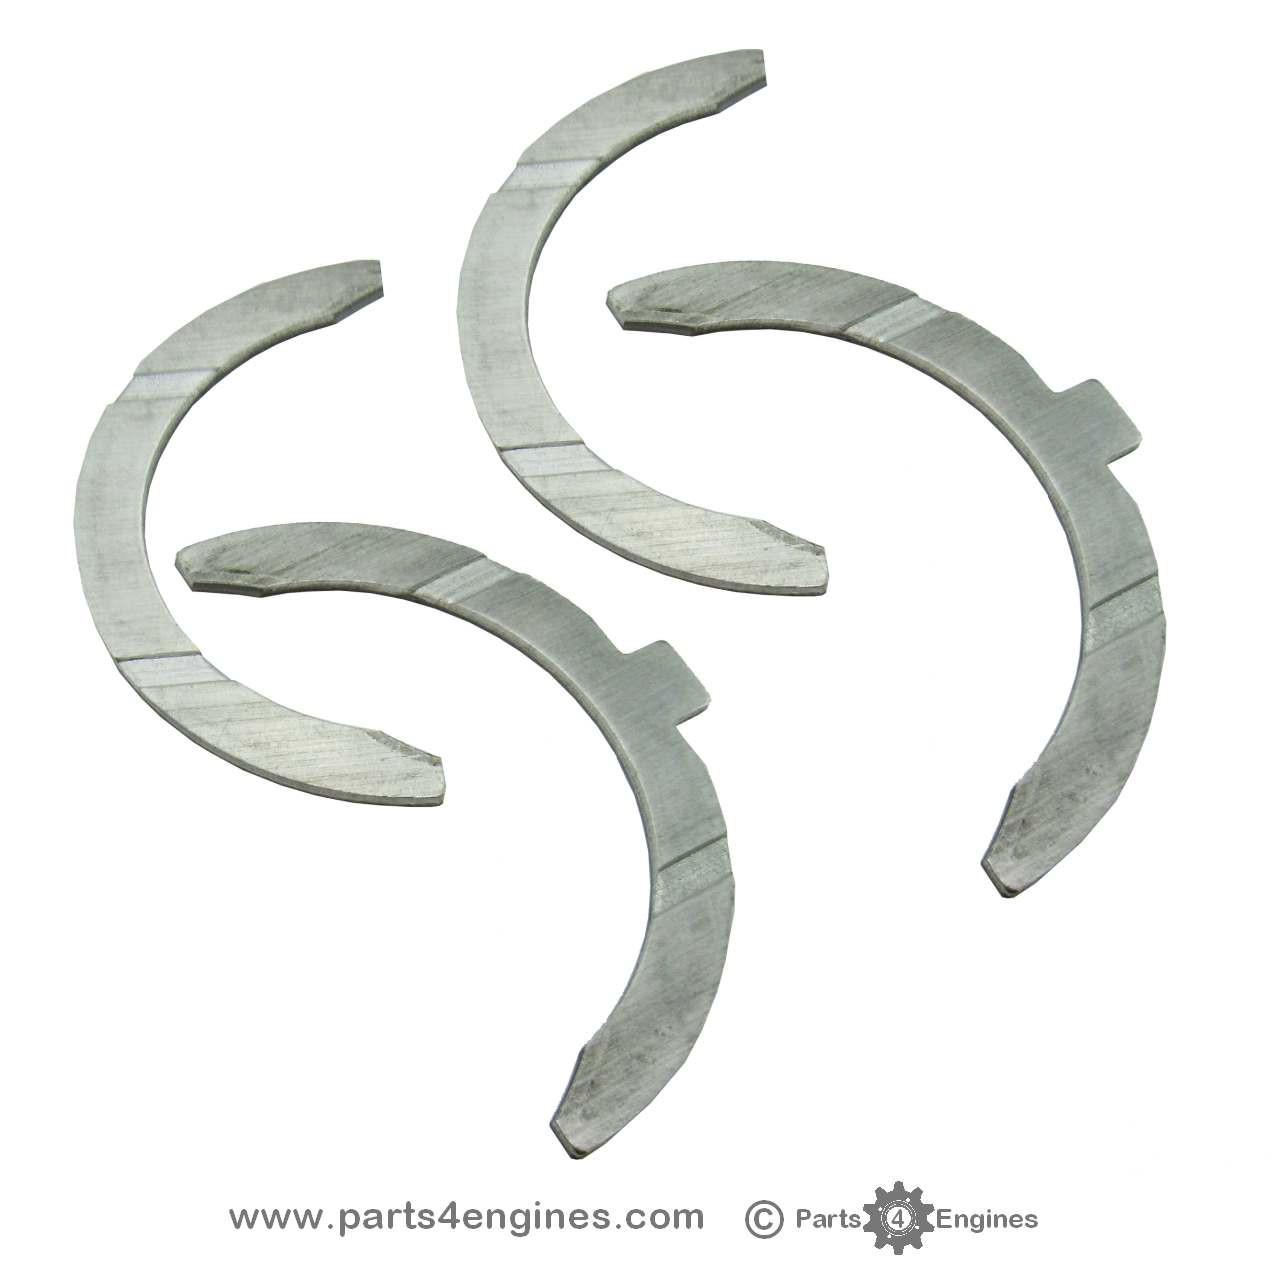 Volvo Penta TAMD22 thrust washer set, from parts4engines.com